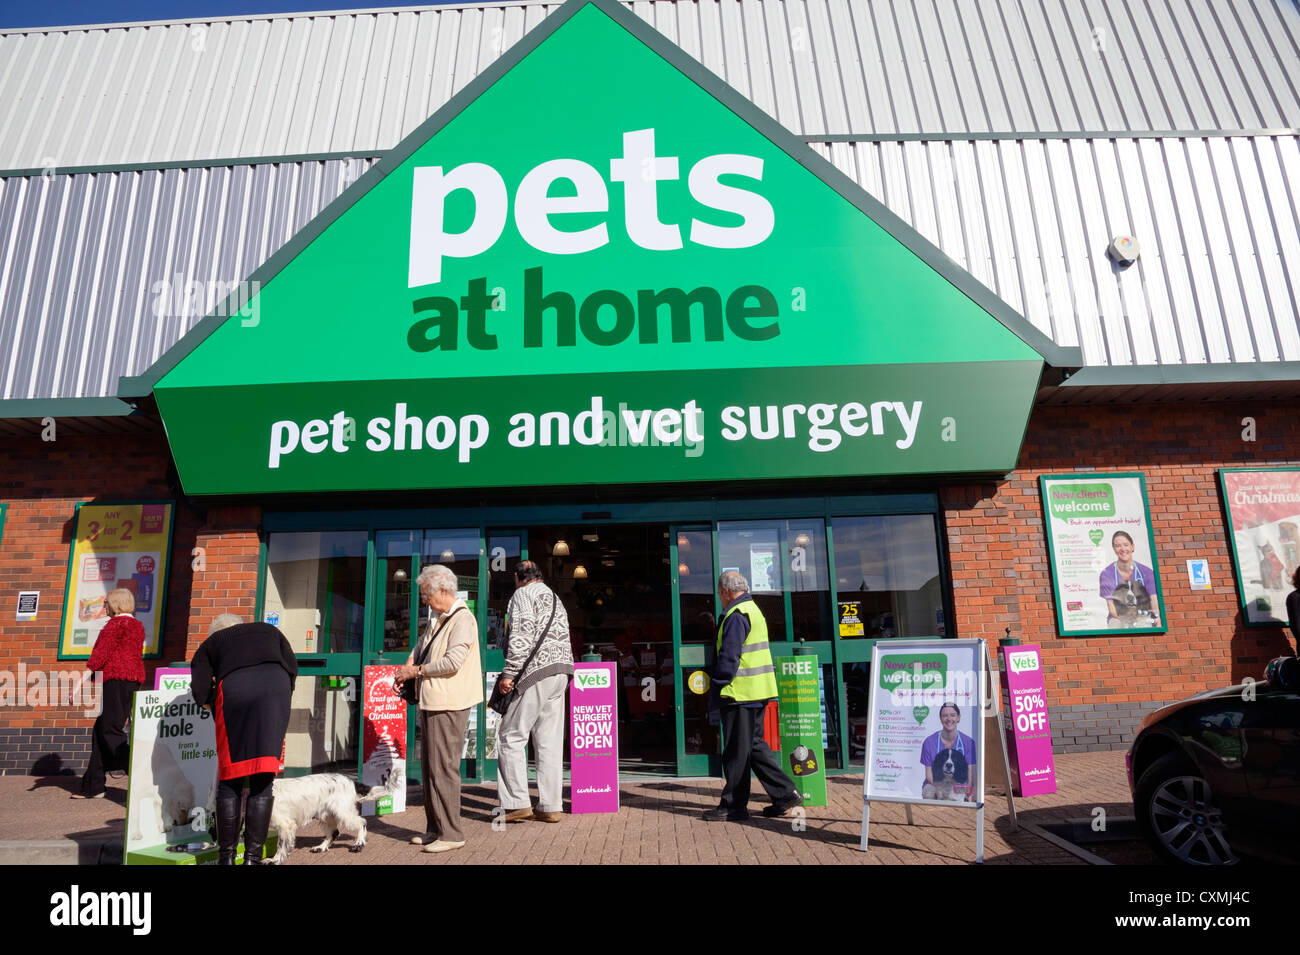 Pets at home store, in Cheltenham, UK. - Stock Image